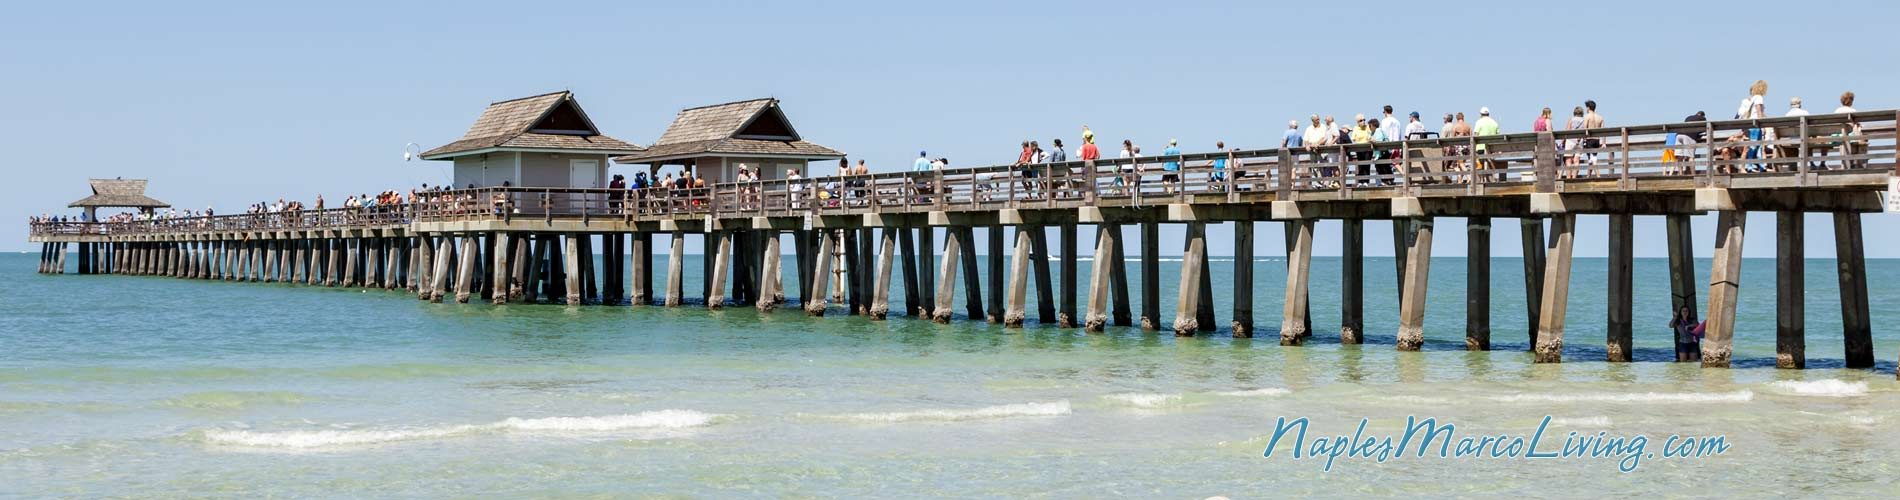 Naples FL Vactions Golf Resorts Spas Hotels Beaches Fishing Guides Attractions Restaurants